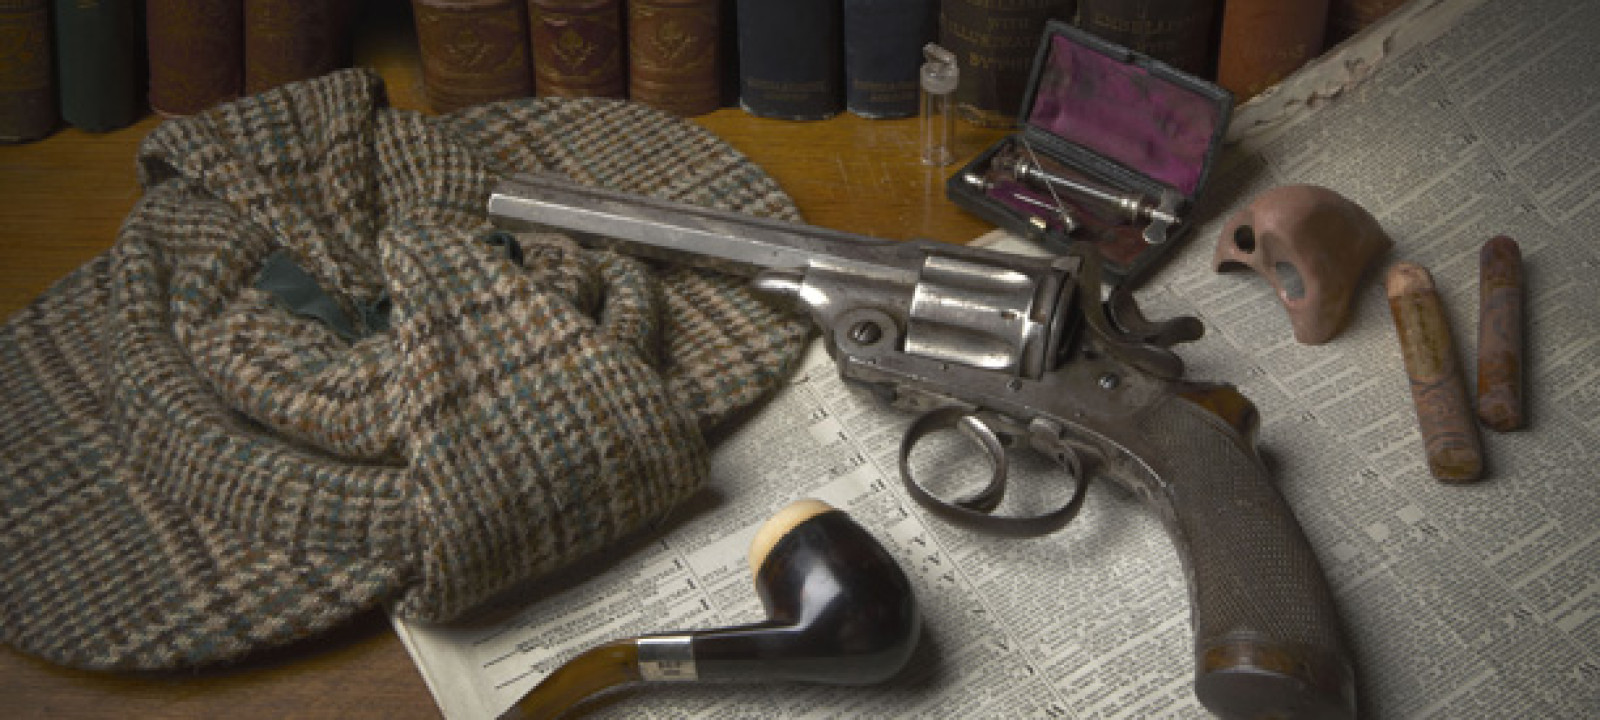 Sherlock Holmes exhibition objects